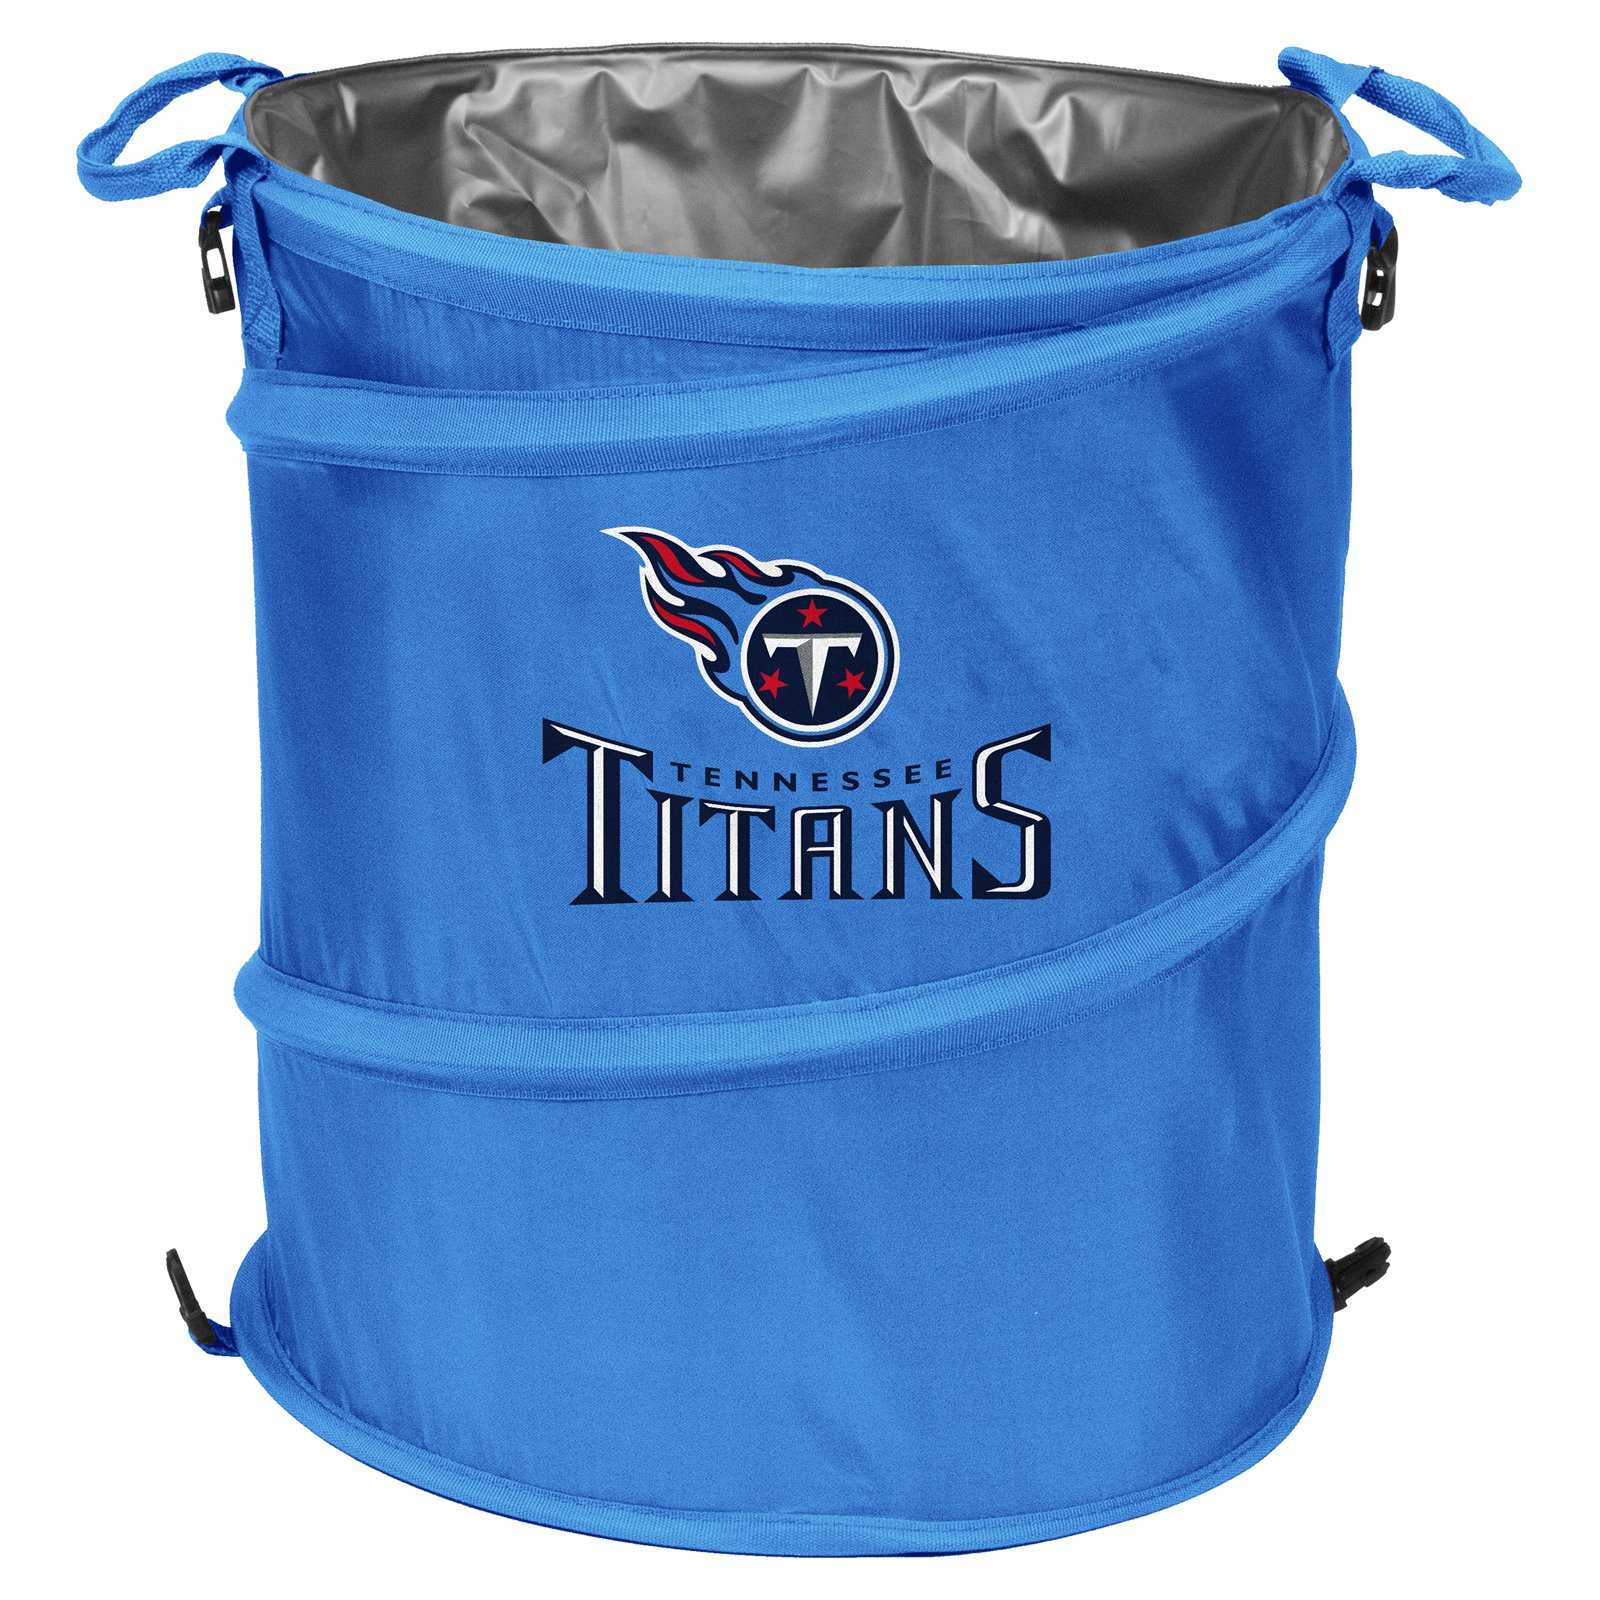 Tennessee Titans 3-in-1 Cooler